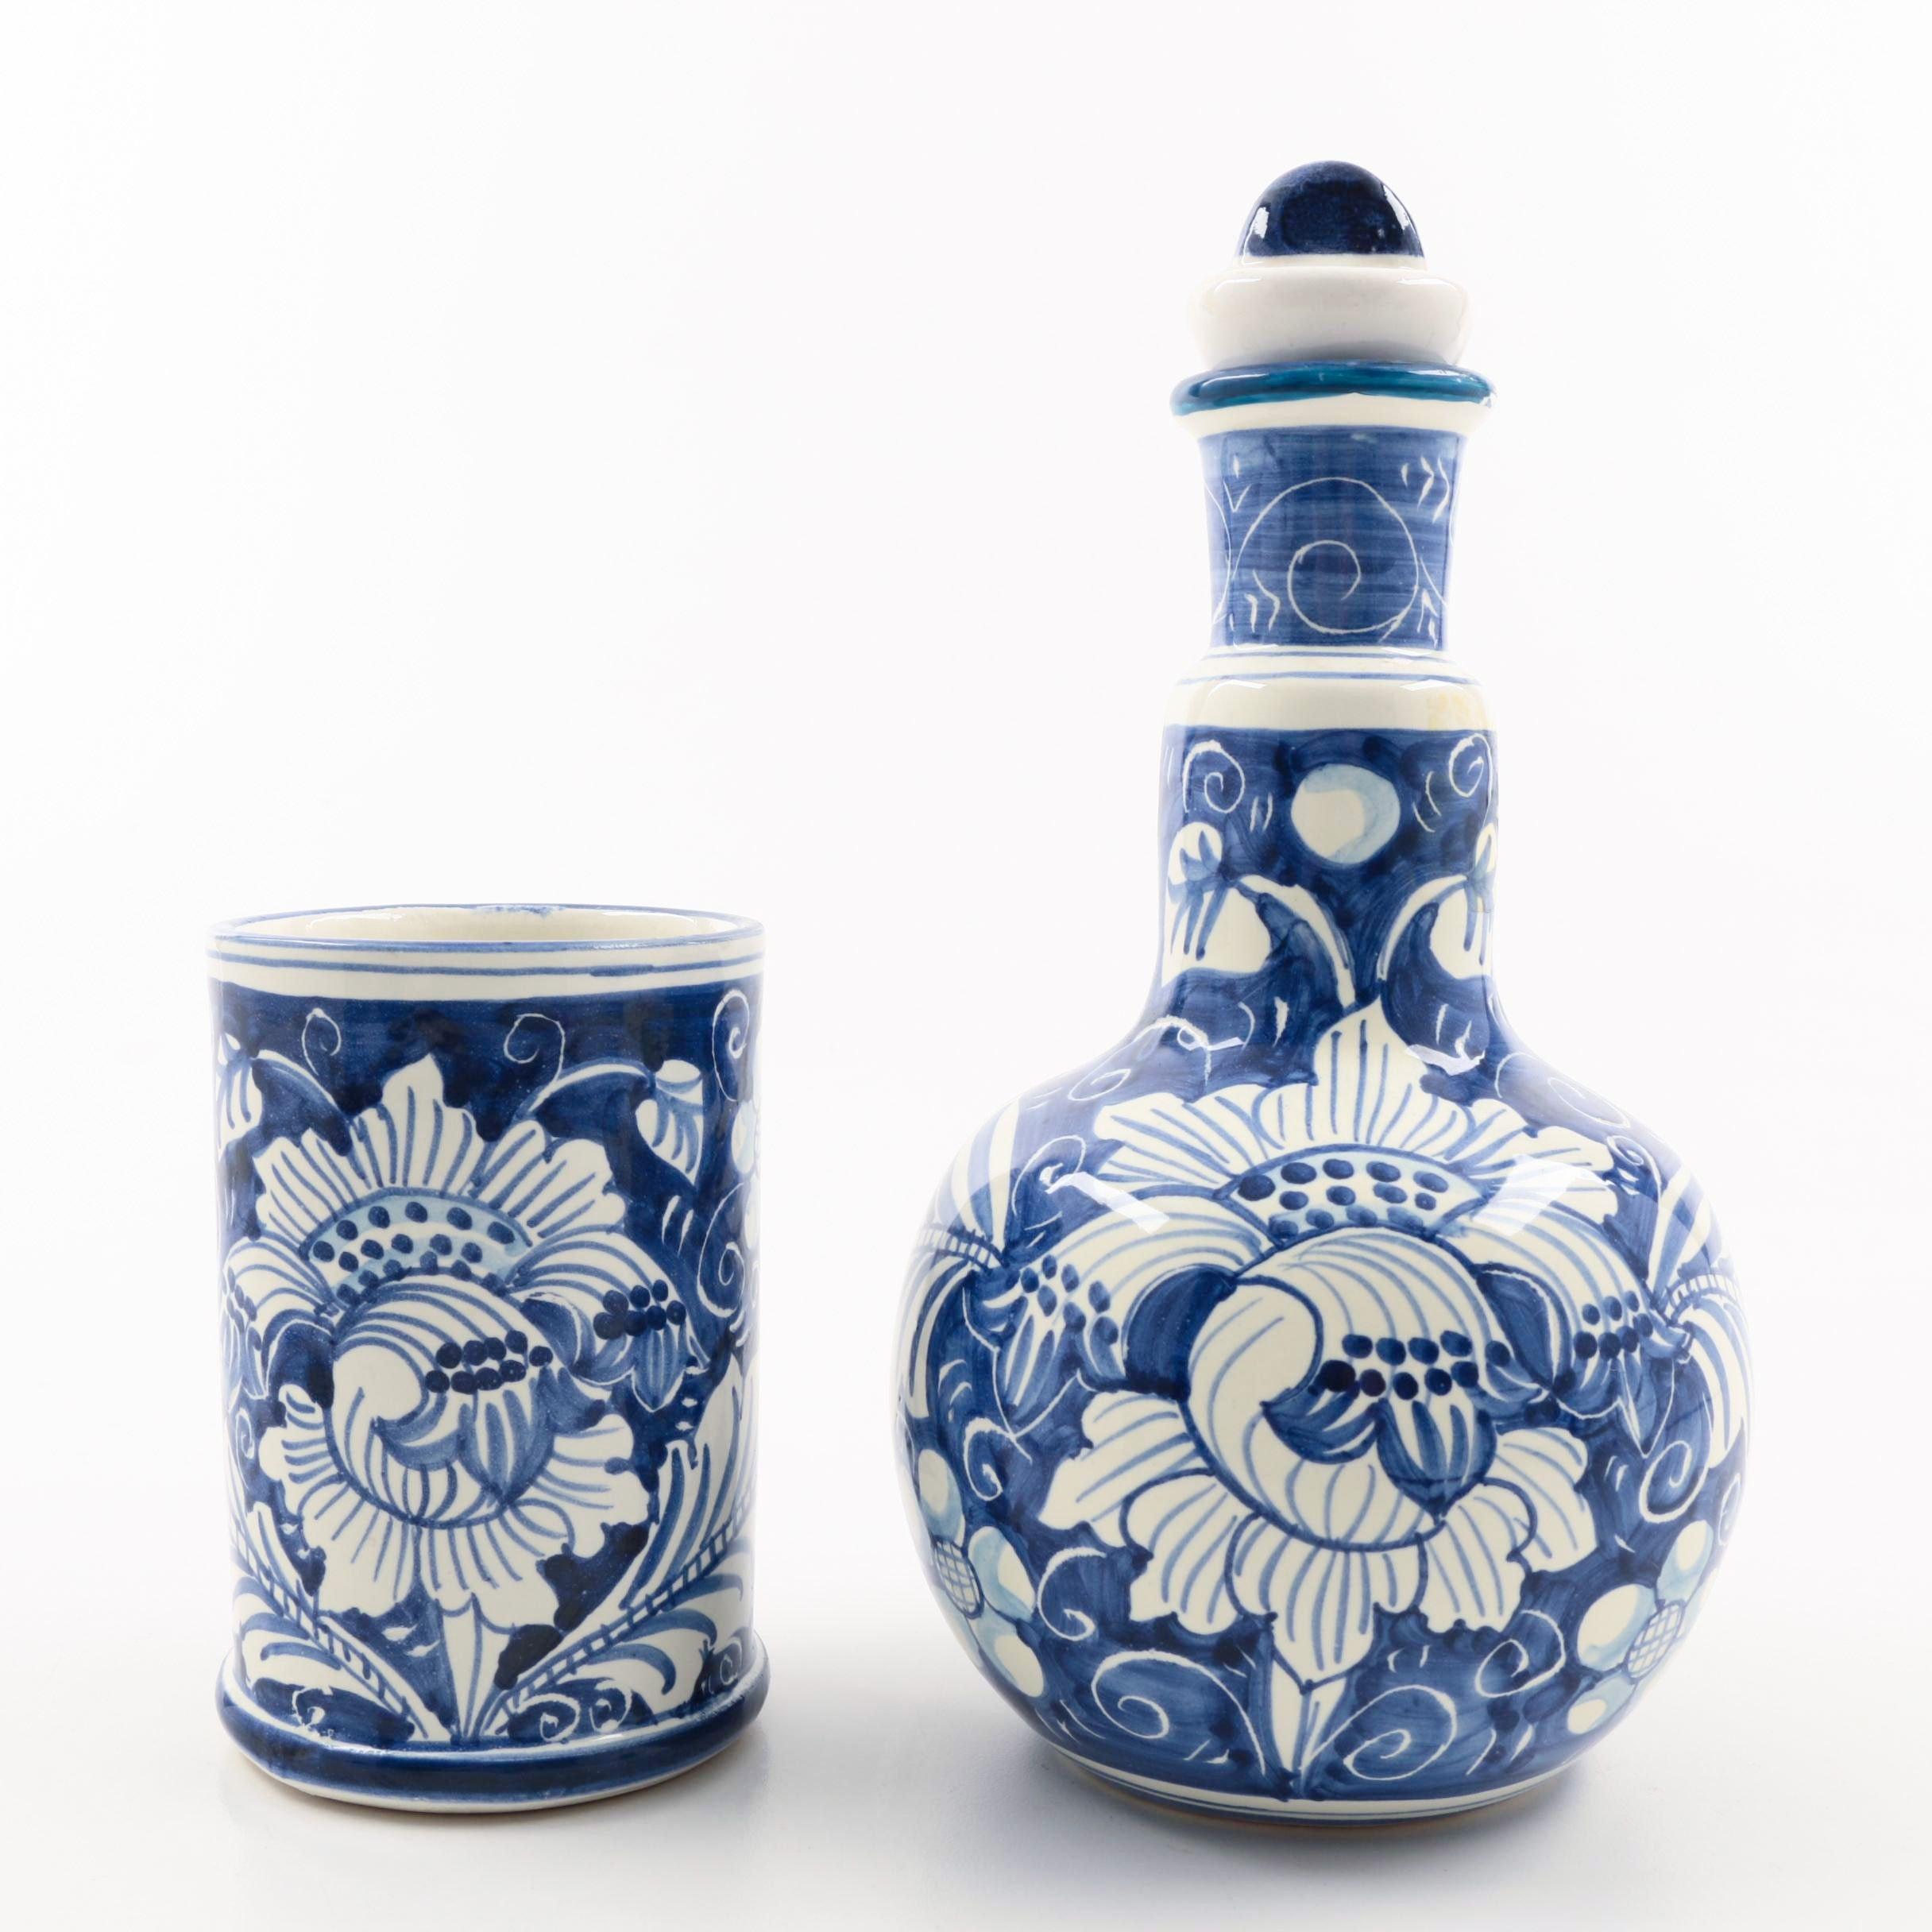 Decorative Blue and White Italian Ceramic Pottery Pieces